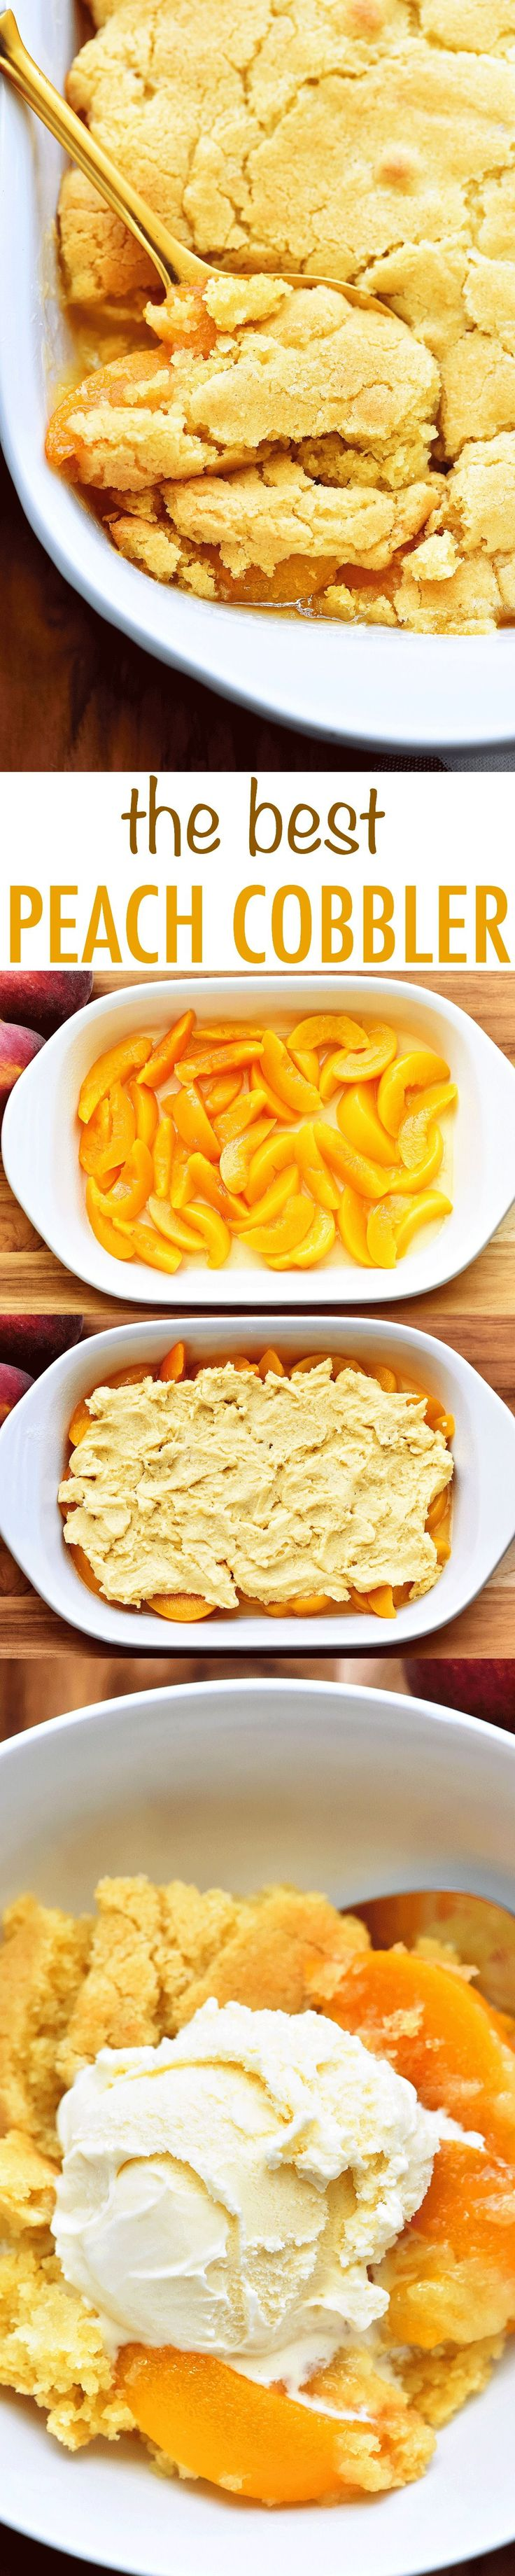 "Hey friends! I am SO excited to share this recipe today. First of all, I know calling a recipe ""the best"" is pretty bold. I usually don't like to do it on my blog, but when I truly ""feel"" something is the best I am going to say it!   This is THE BEST PEACH... Read More »"